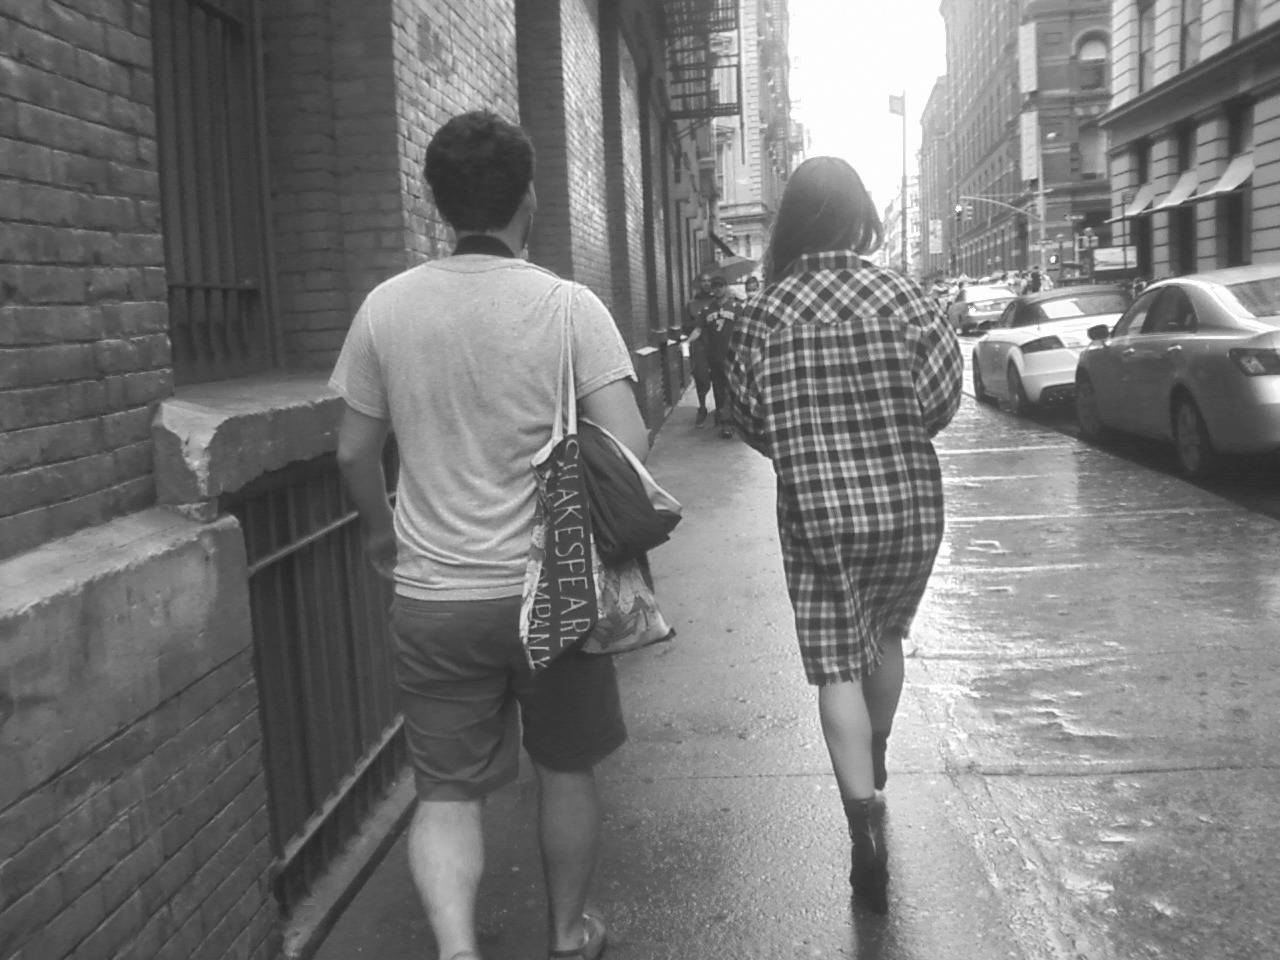 Photographer Jackson Krule and model Claudia walk together today in NYC photo-shoot.